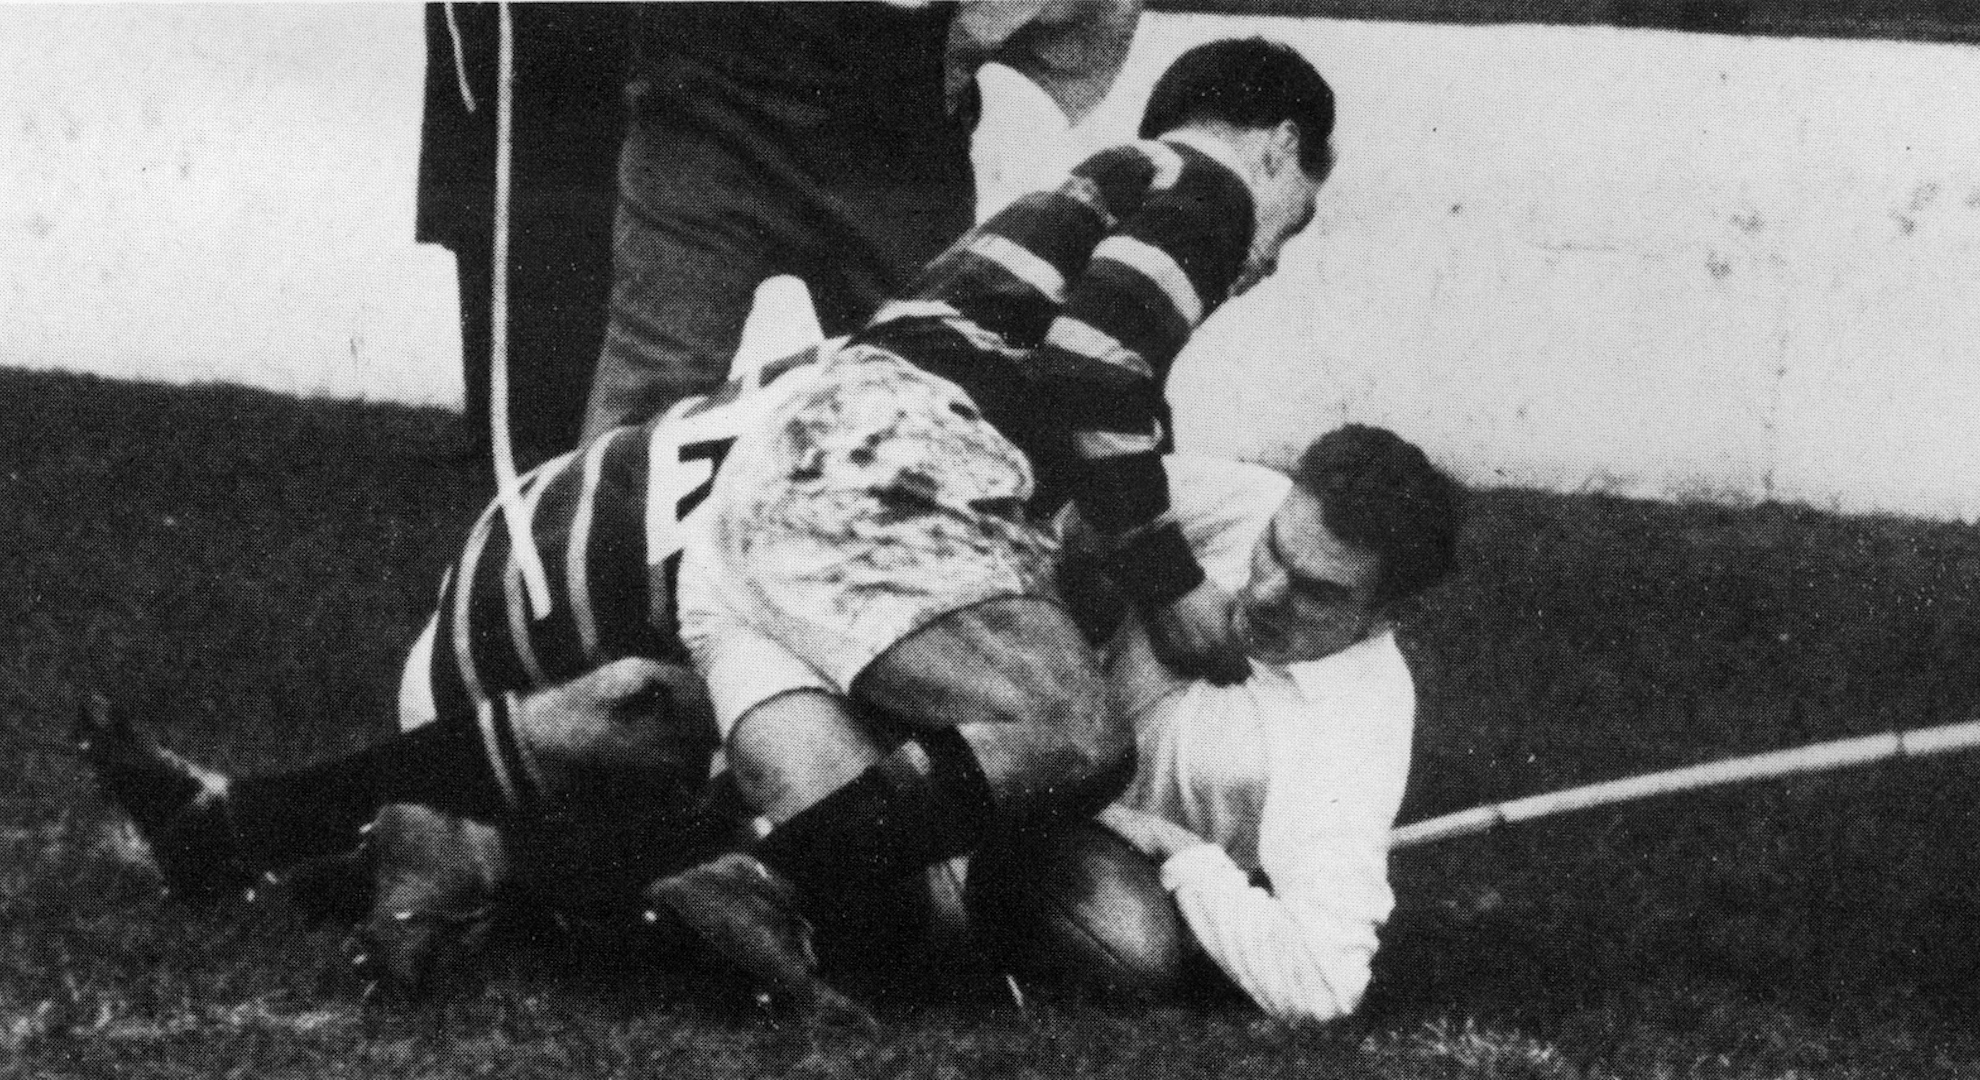 Bebb scores a try for Swansea